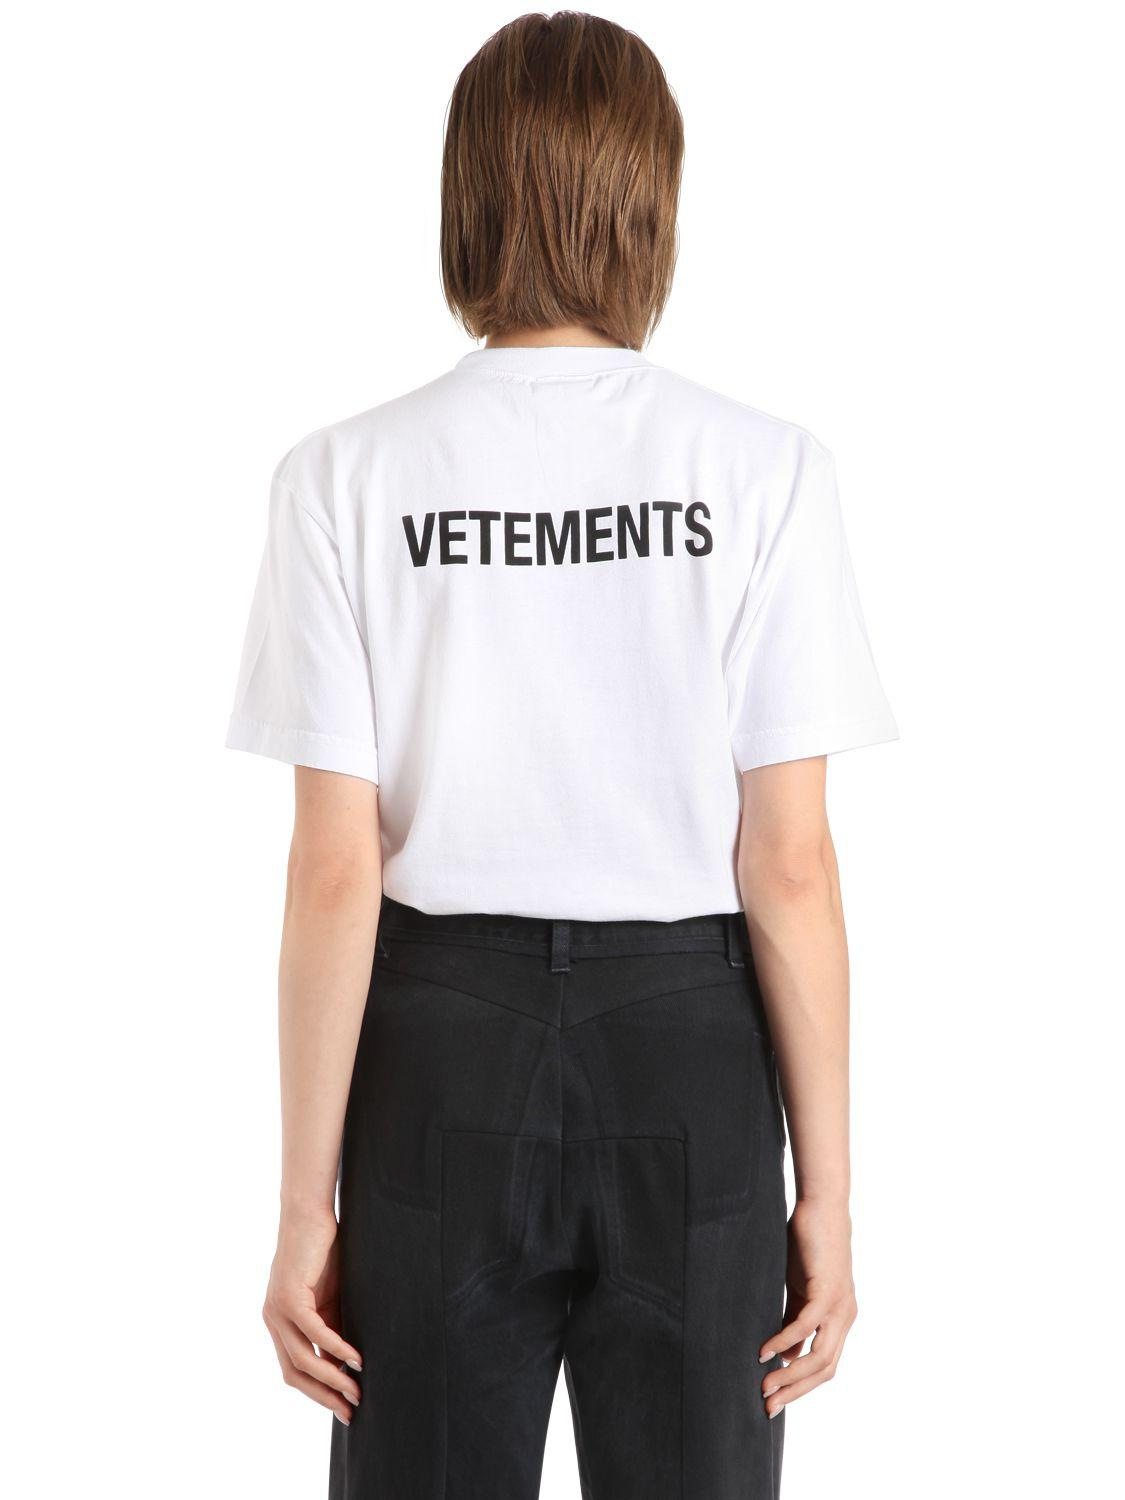 vetements staff printed jersey t shirt in white lyst. Black Bedroom Furniture Sets. Home Design Ideas